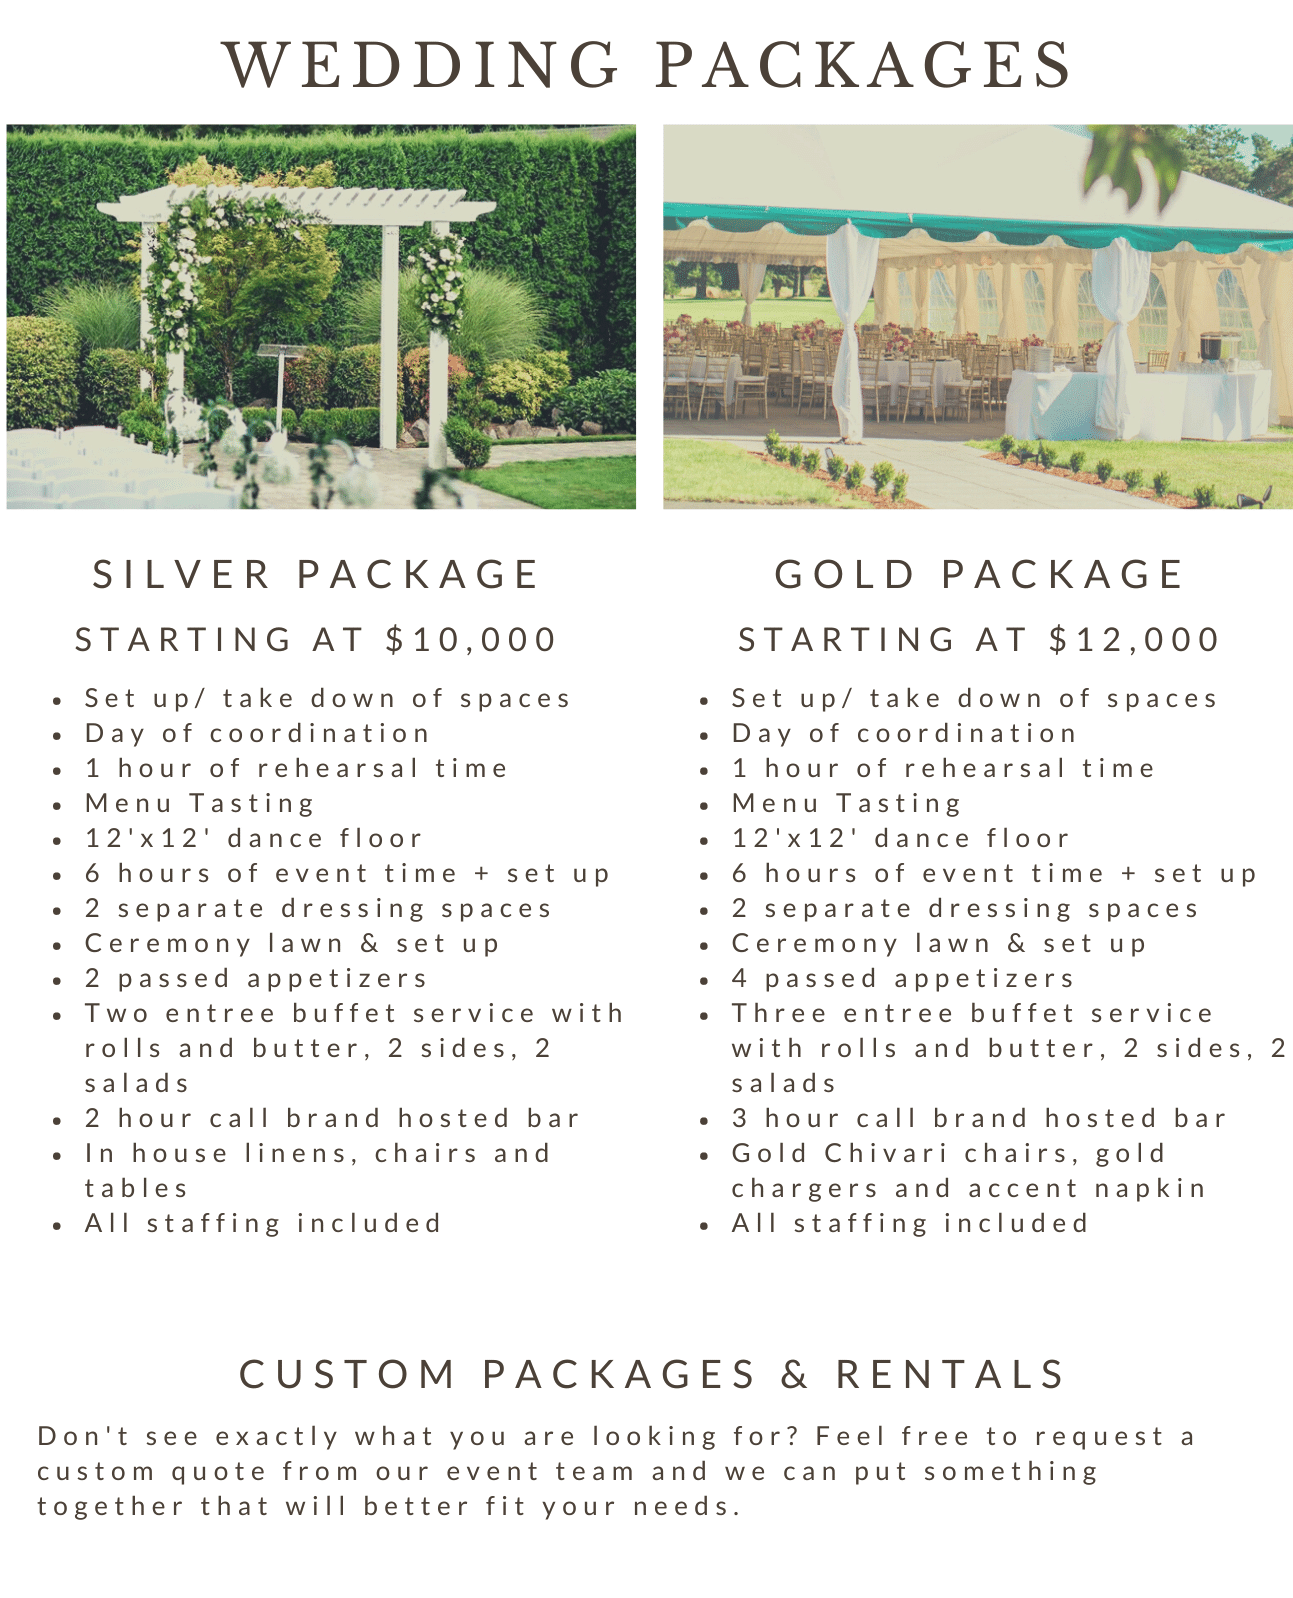 All-Inclusive and Custom Wedding Packages to Fit Every Need